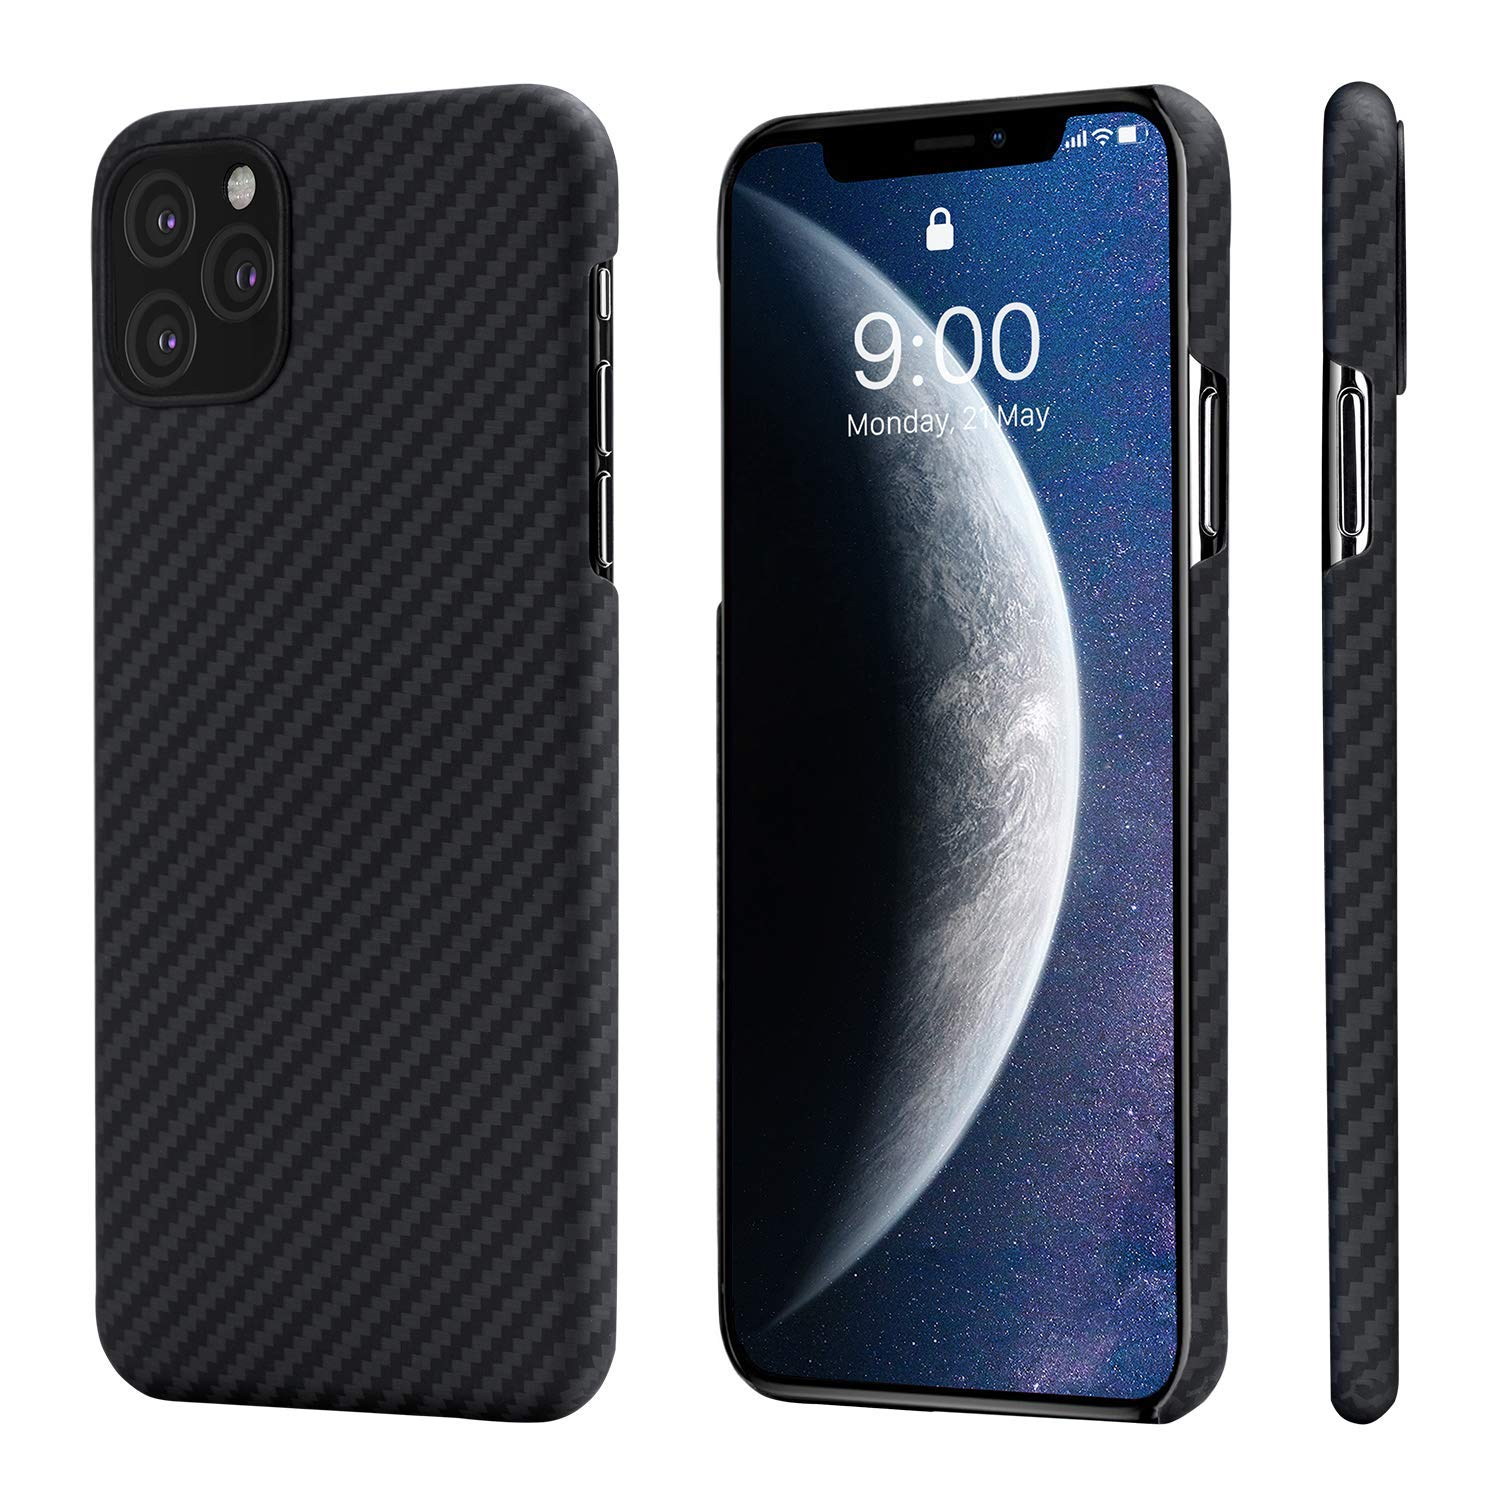 PITAKA Slim Case Compatible with iPhone 11 Pro 5.8'', MagCase Aramid Fiber [Real Body Armor Material] Phone Case, Minimalist Strongest Durable Snugly Fit Snap-on Case - Black/Grey(Twill) by PITAKA